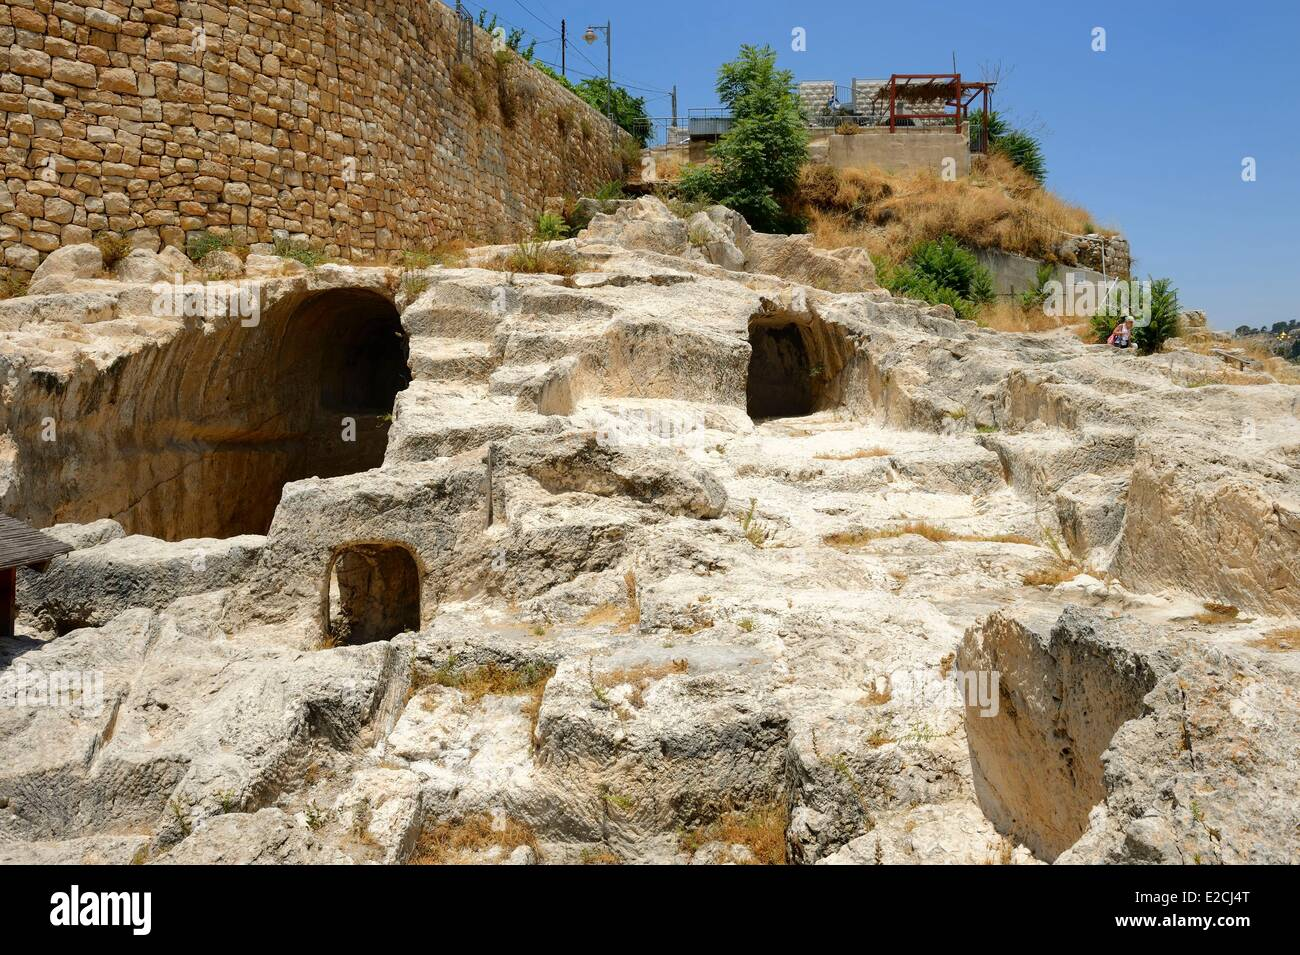 Israel, Jerusalem, holy city, City of David south of old town, weill excavations at alleged tombs of house of David - Stock Image